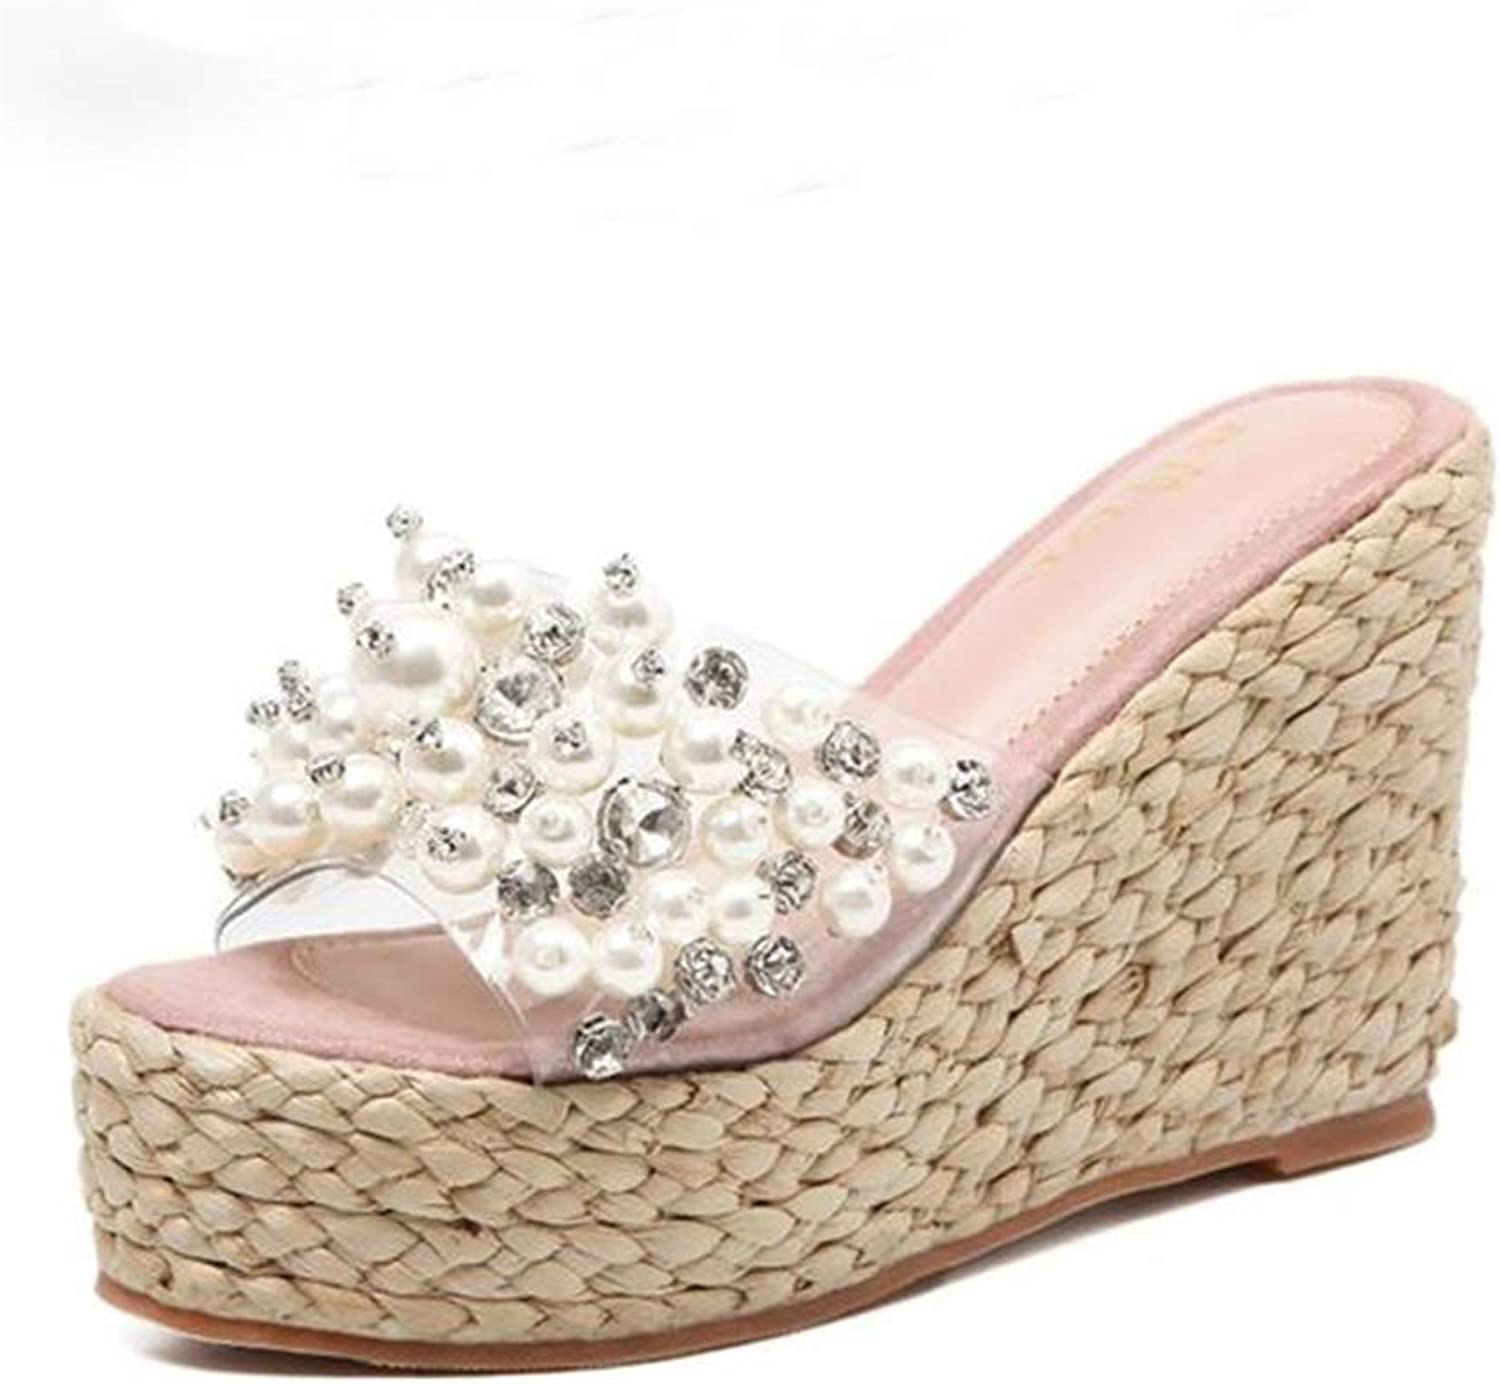 T-JULY Women's Flowers Sandals for Beach Patchwork Transparent Pearl Crystal Solid Wedges Platform Outside Braided Heels Slippers